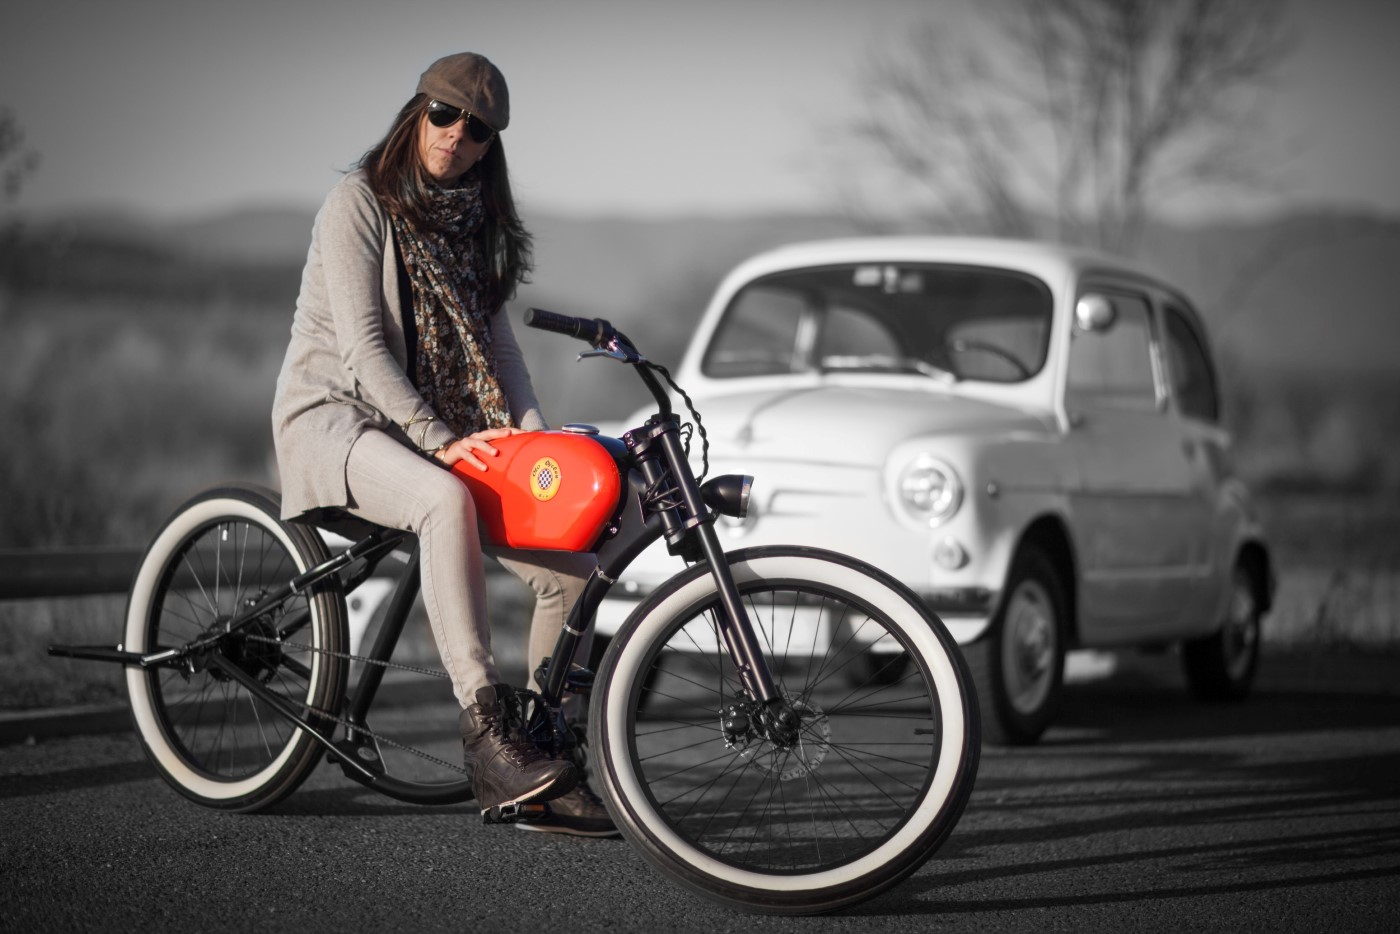 https://images.hgmsites.net/hug/otocycles-retro-electric-bicycle_100451058_h.jpg